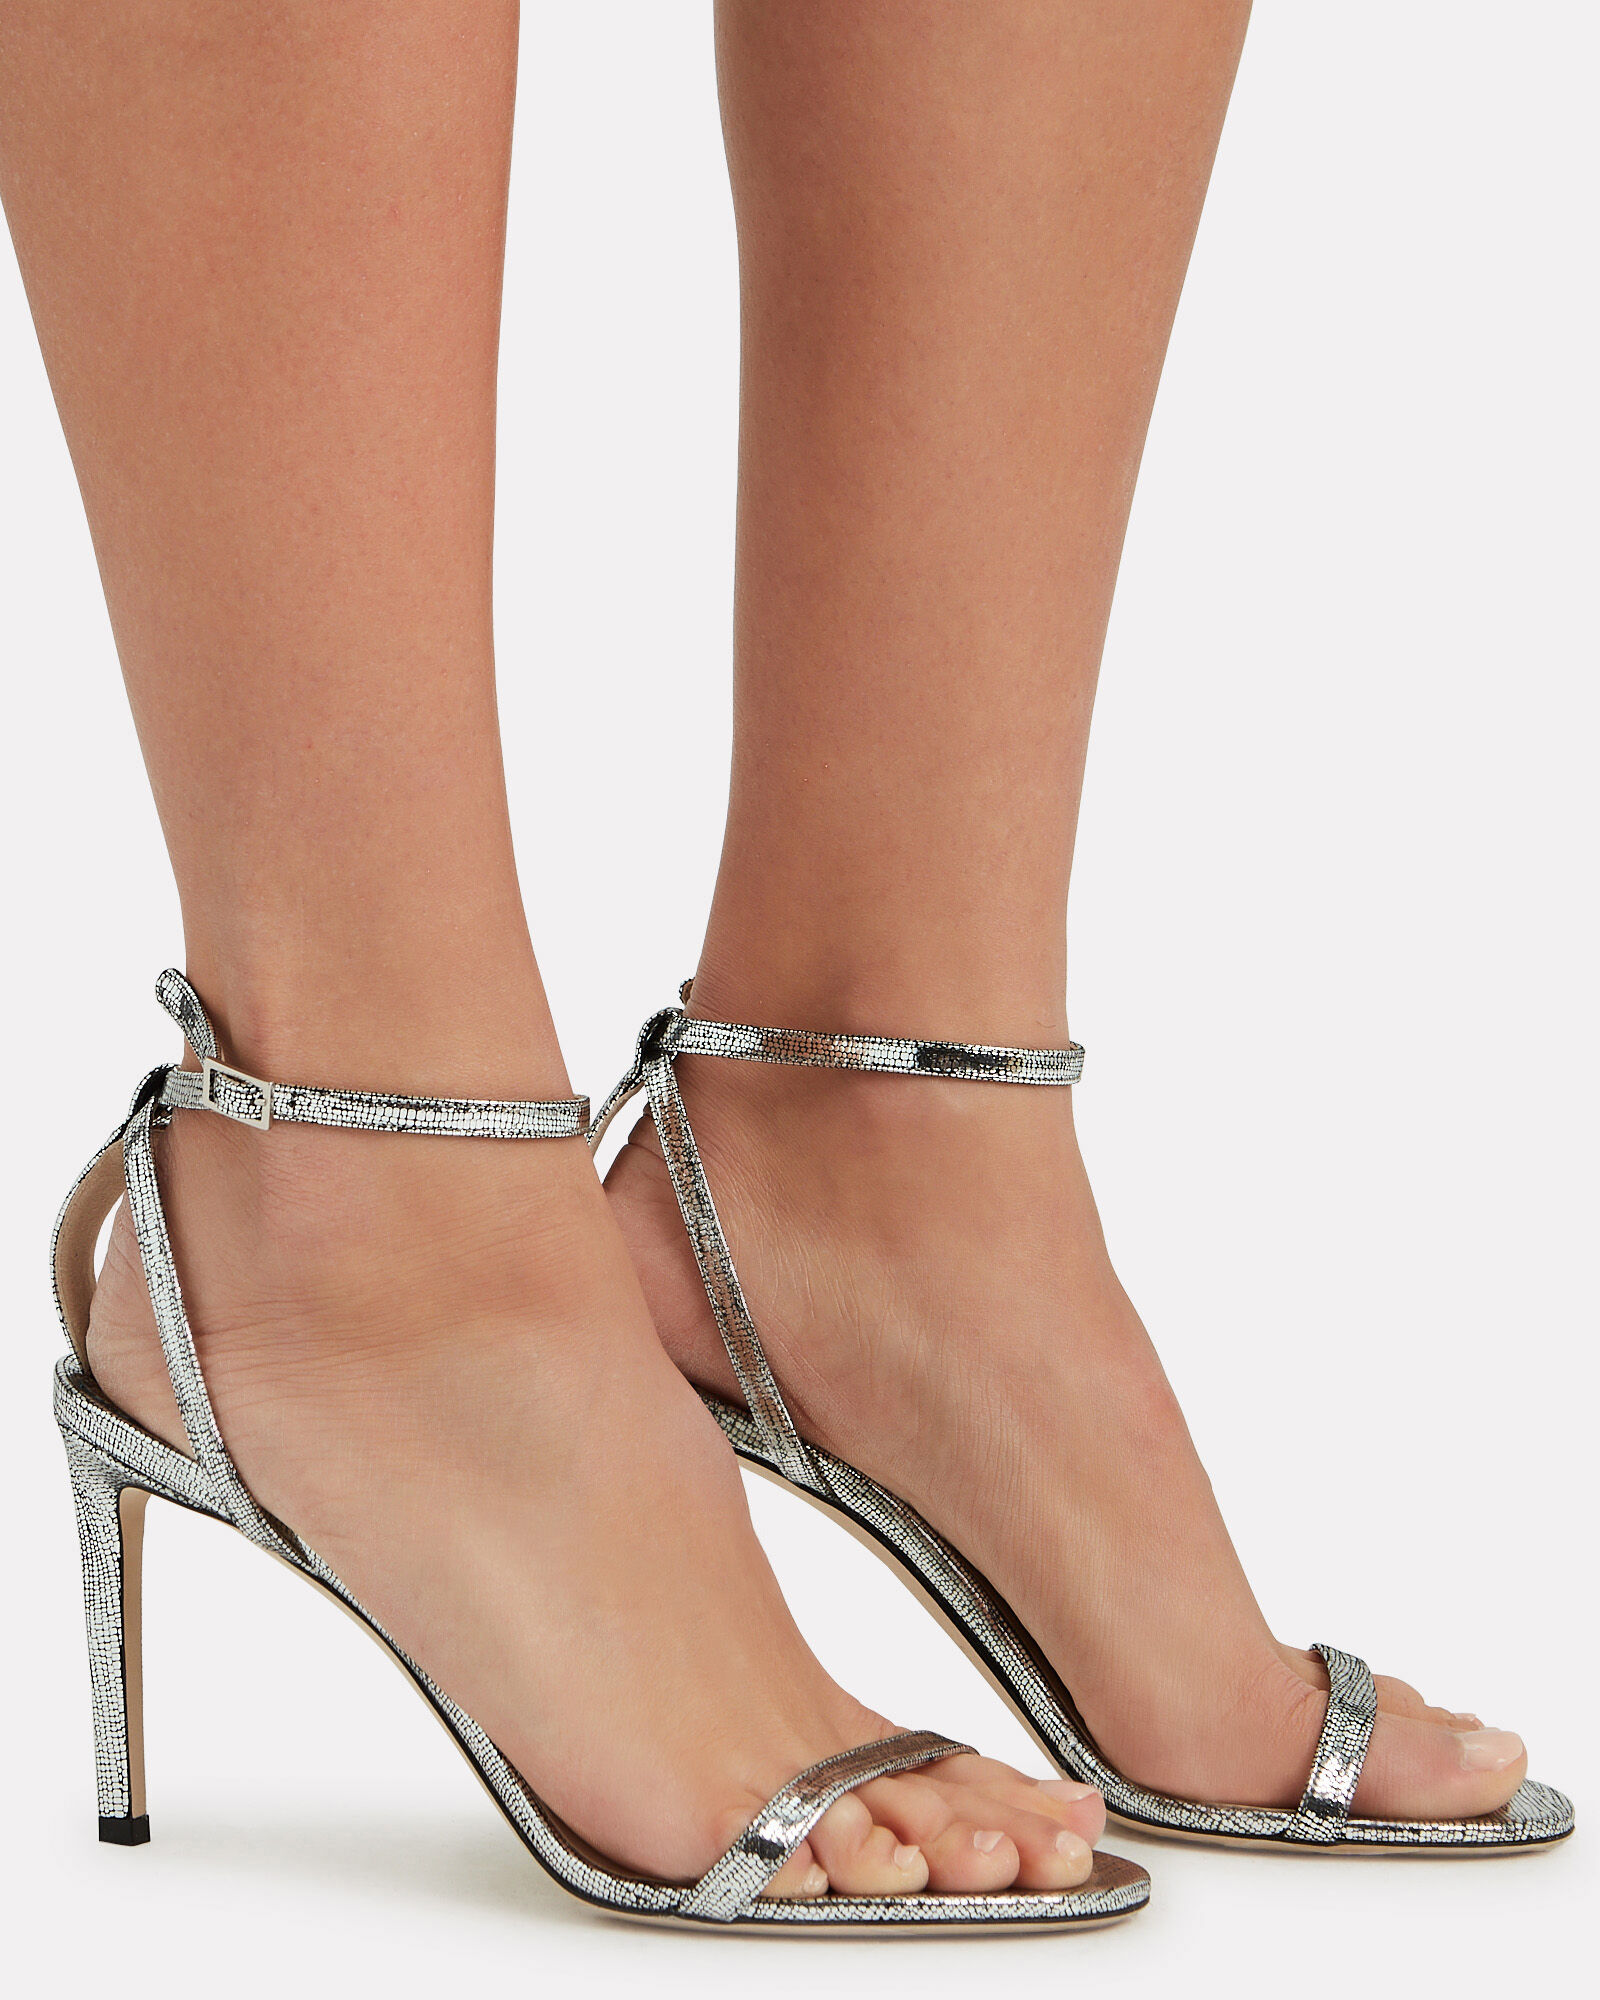 Minny 85 Leather Sandals, SILVER, hi-res